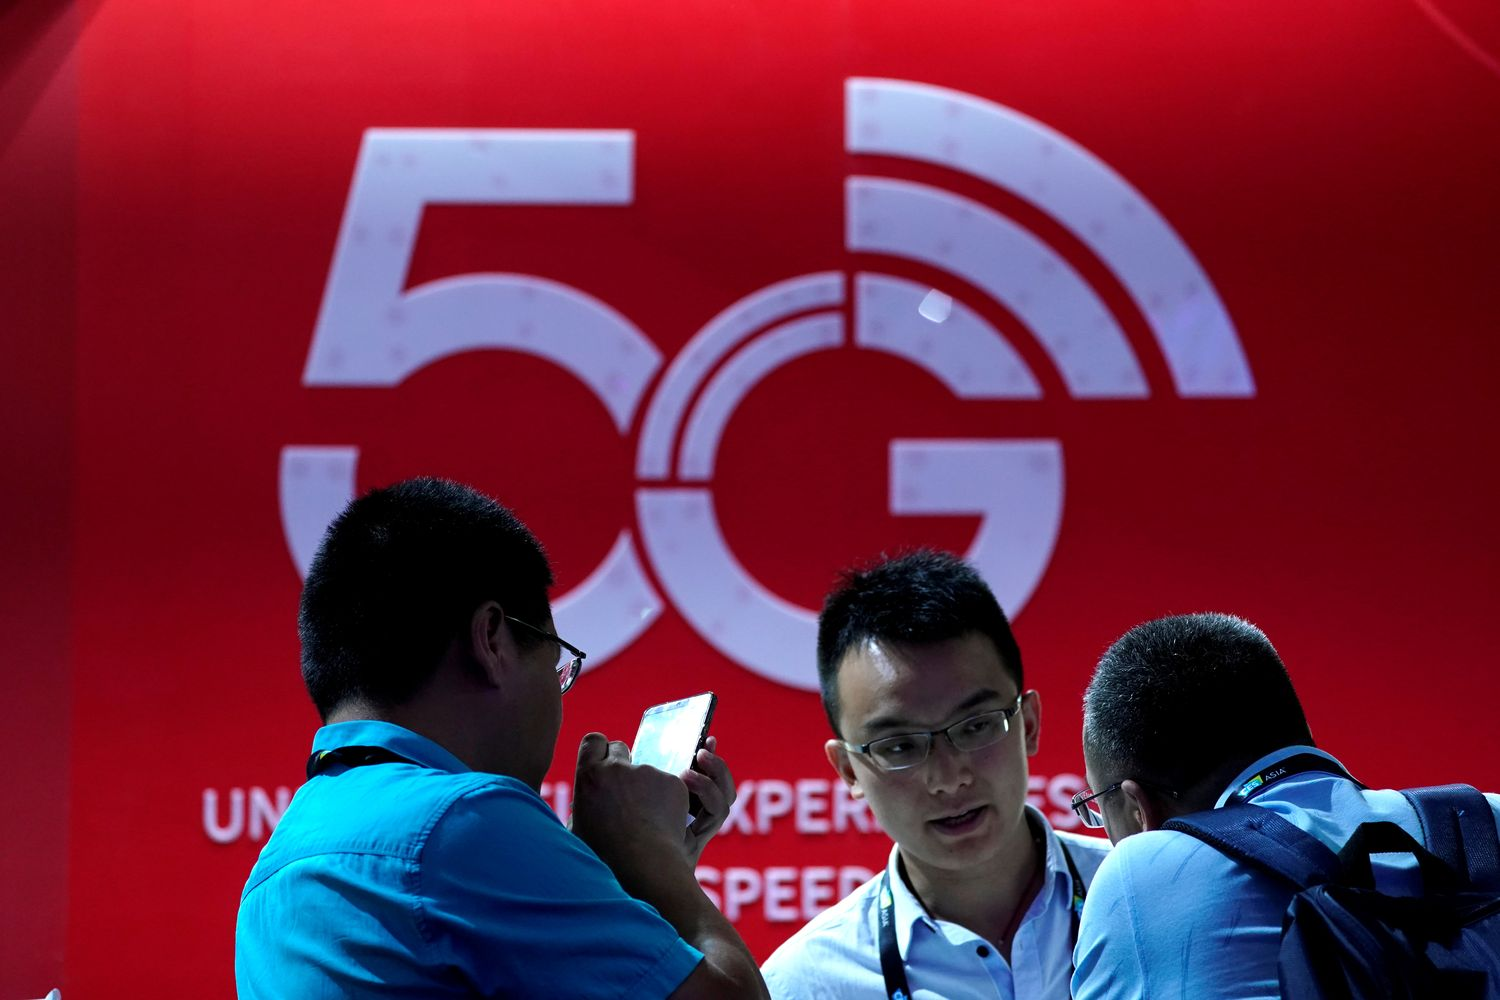 A sign advertising 5G is seen at CES (Consumer Electronics Show) Asia 2019 in Shanghai on June 11. (Reuters photo)